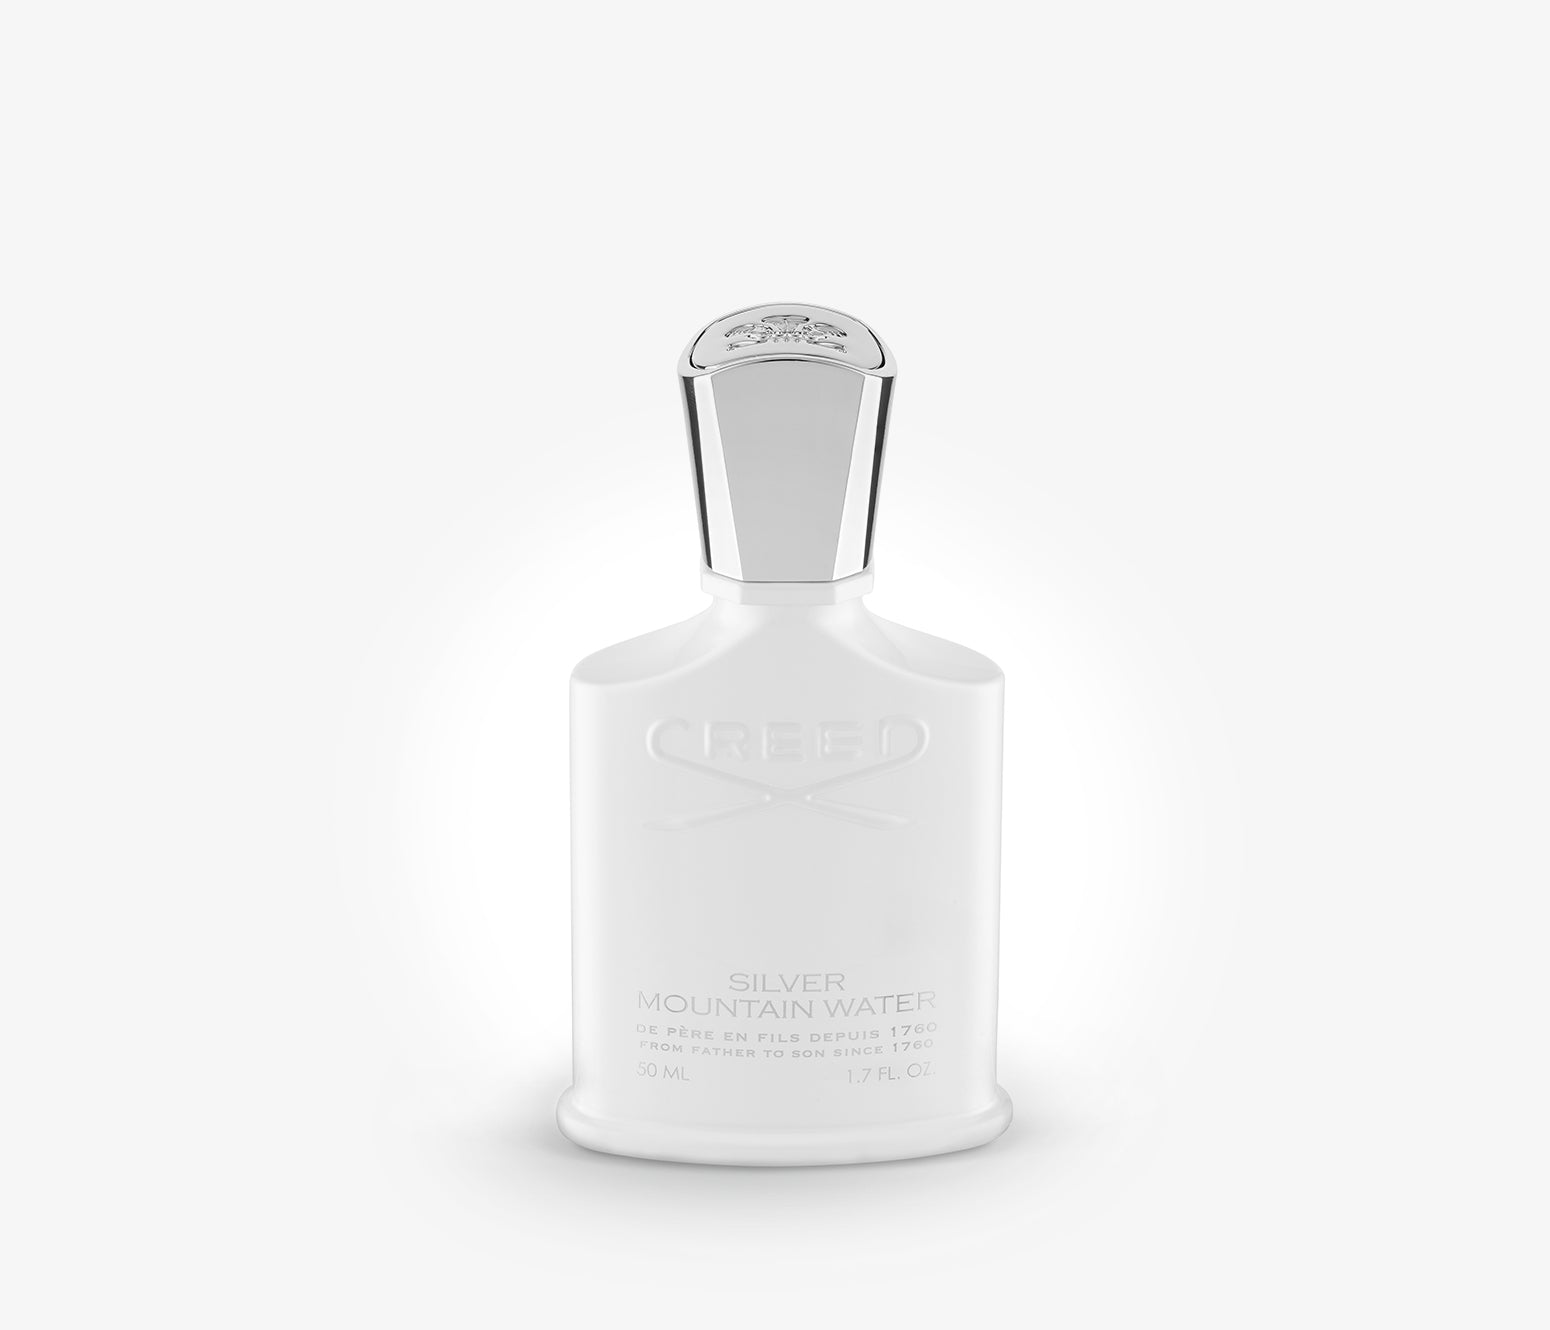 Creed - Silver Mountain Water - 100ml - OBS001 - Product Image - Fragrance - Les Senteurs